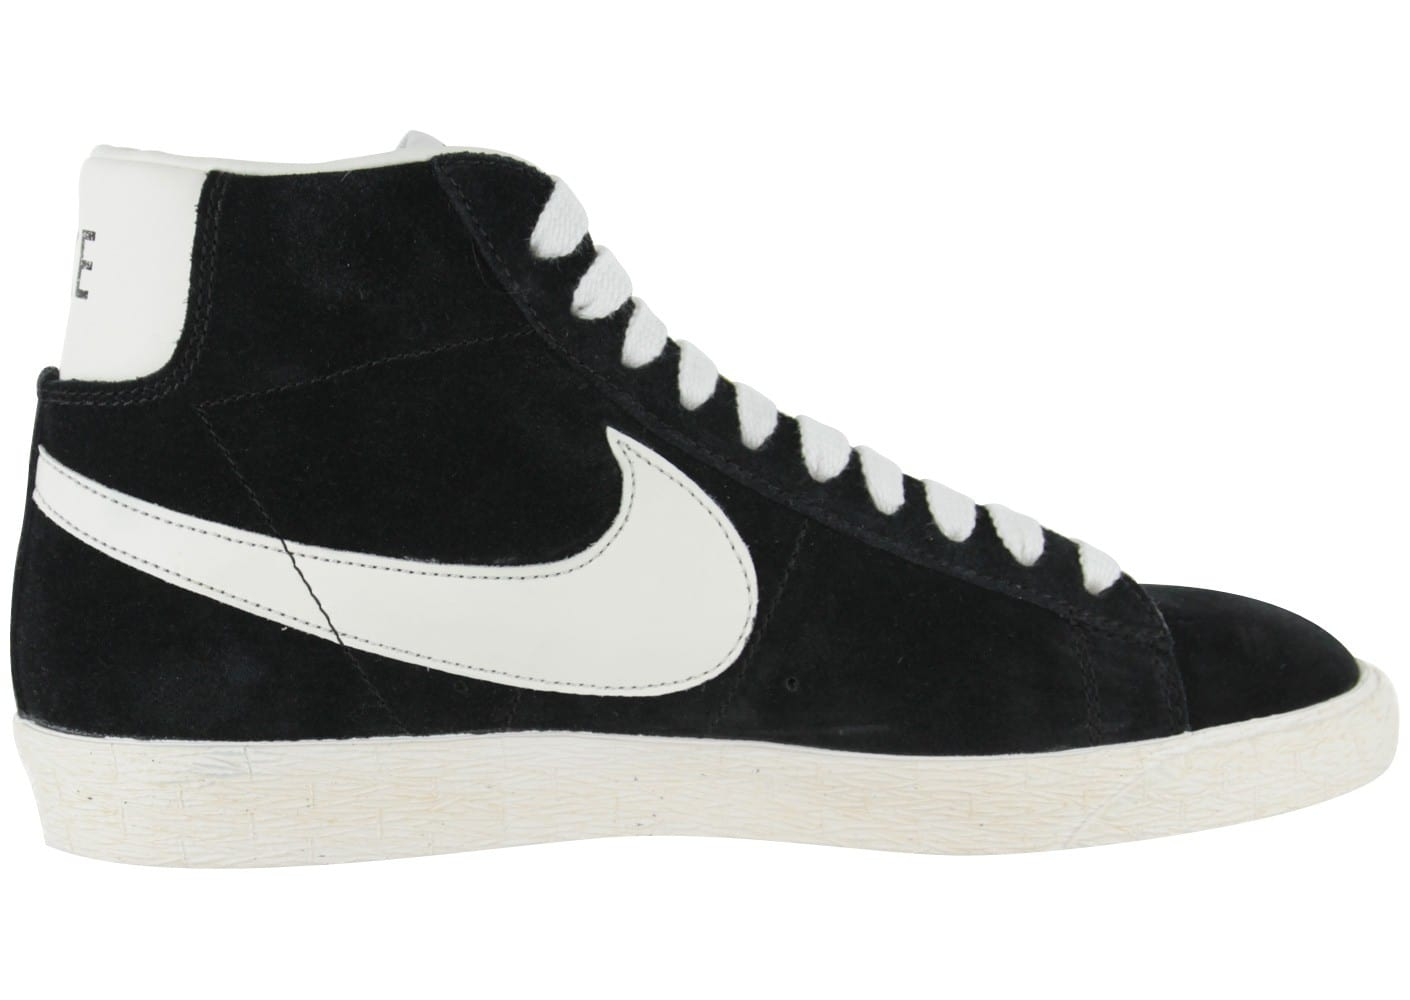 nike blazer mid noire chaussures homme chausport. Black Bedroom Furniture Sets. Home Design Ideas